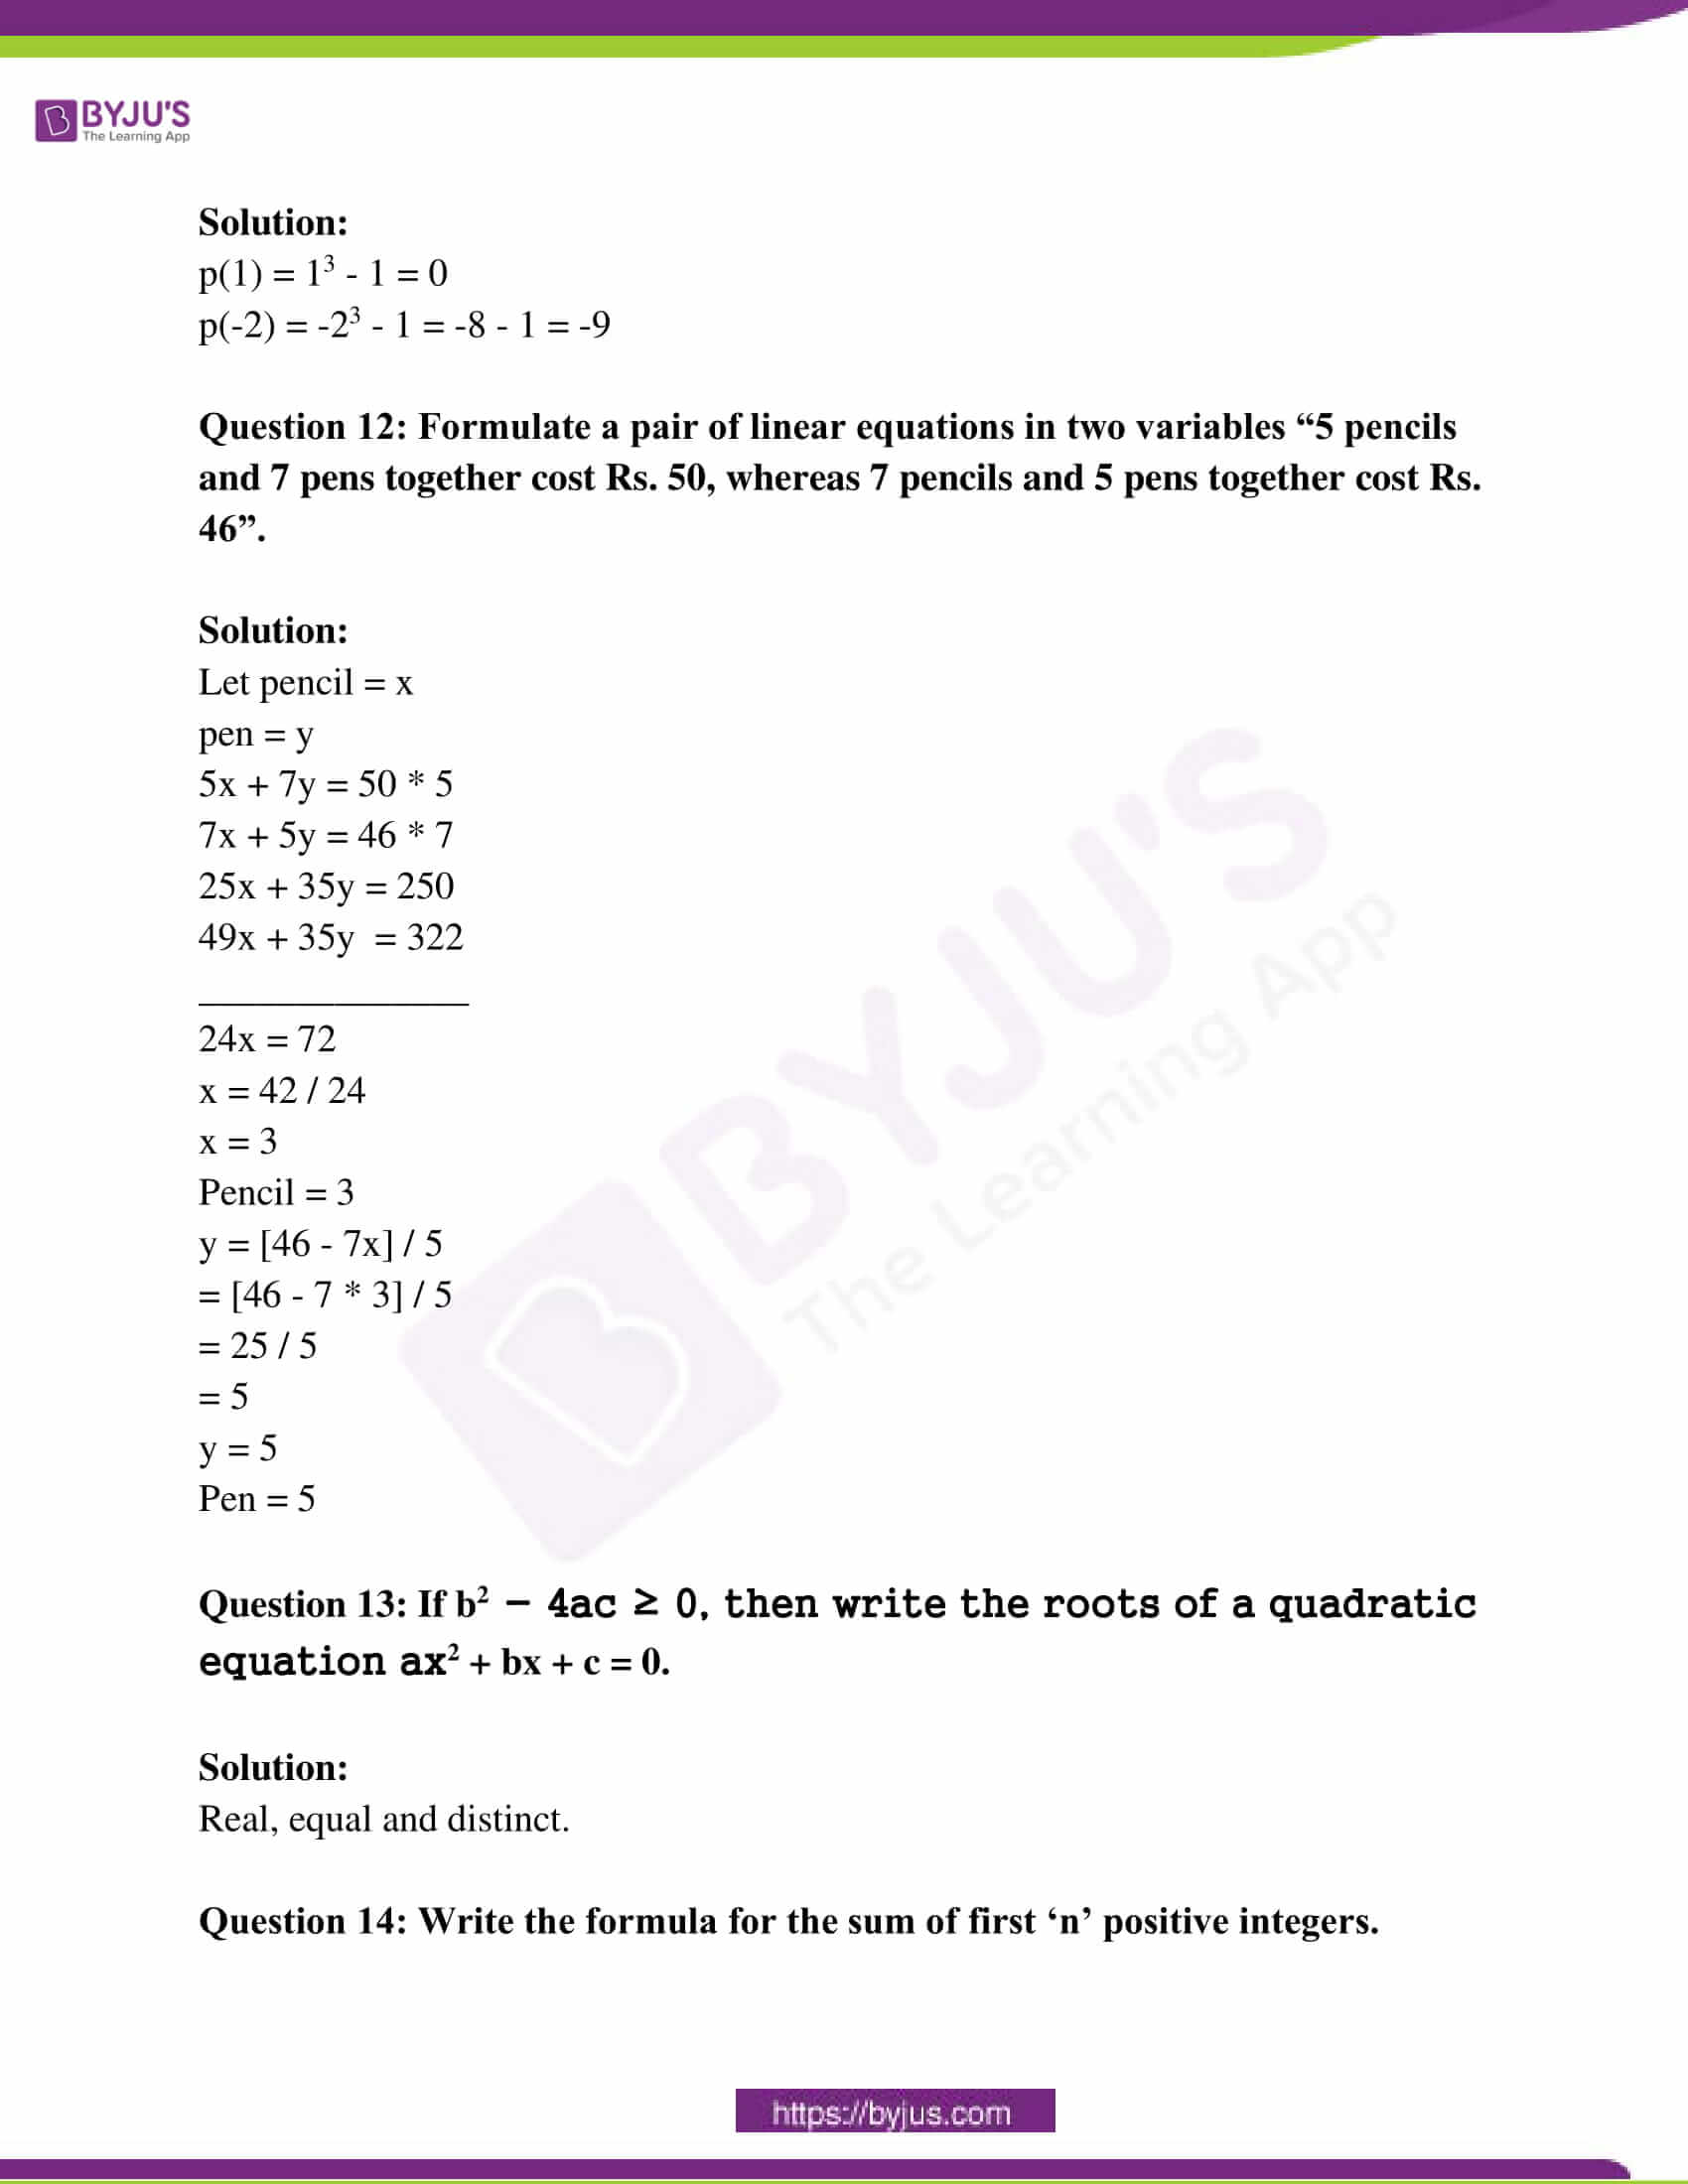 ap class 10 maths question paper 1 sol march 2015 06